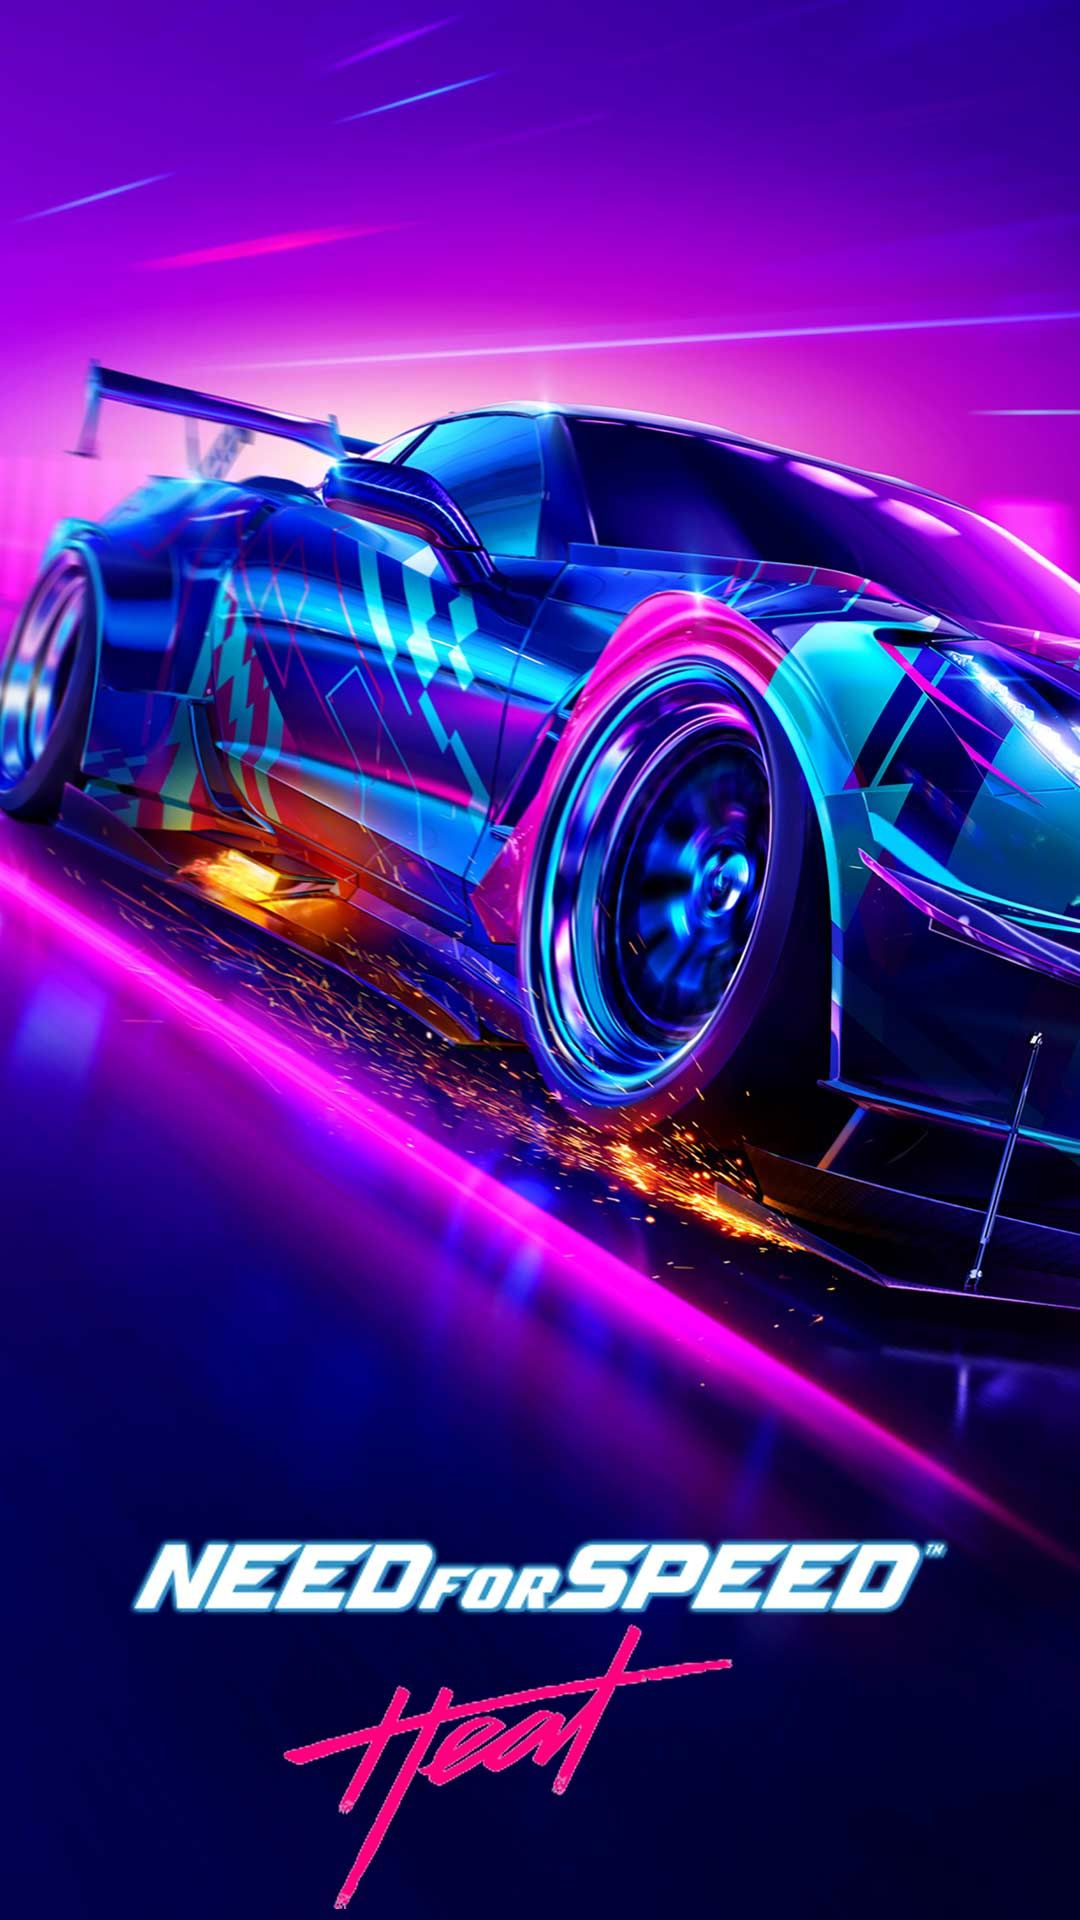 Need For Speed Heat Wallpaper Hd Phone Backgrounds Cars Poster Art On Iphone Android Lock Screen In 2020 Hd Phone